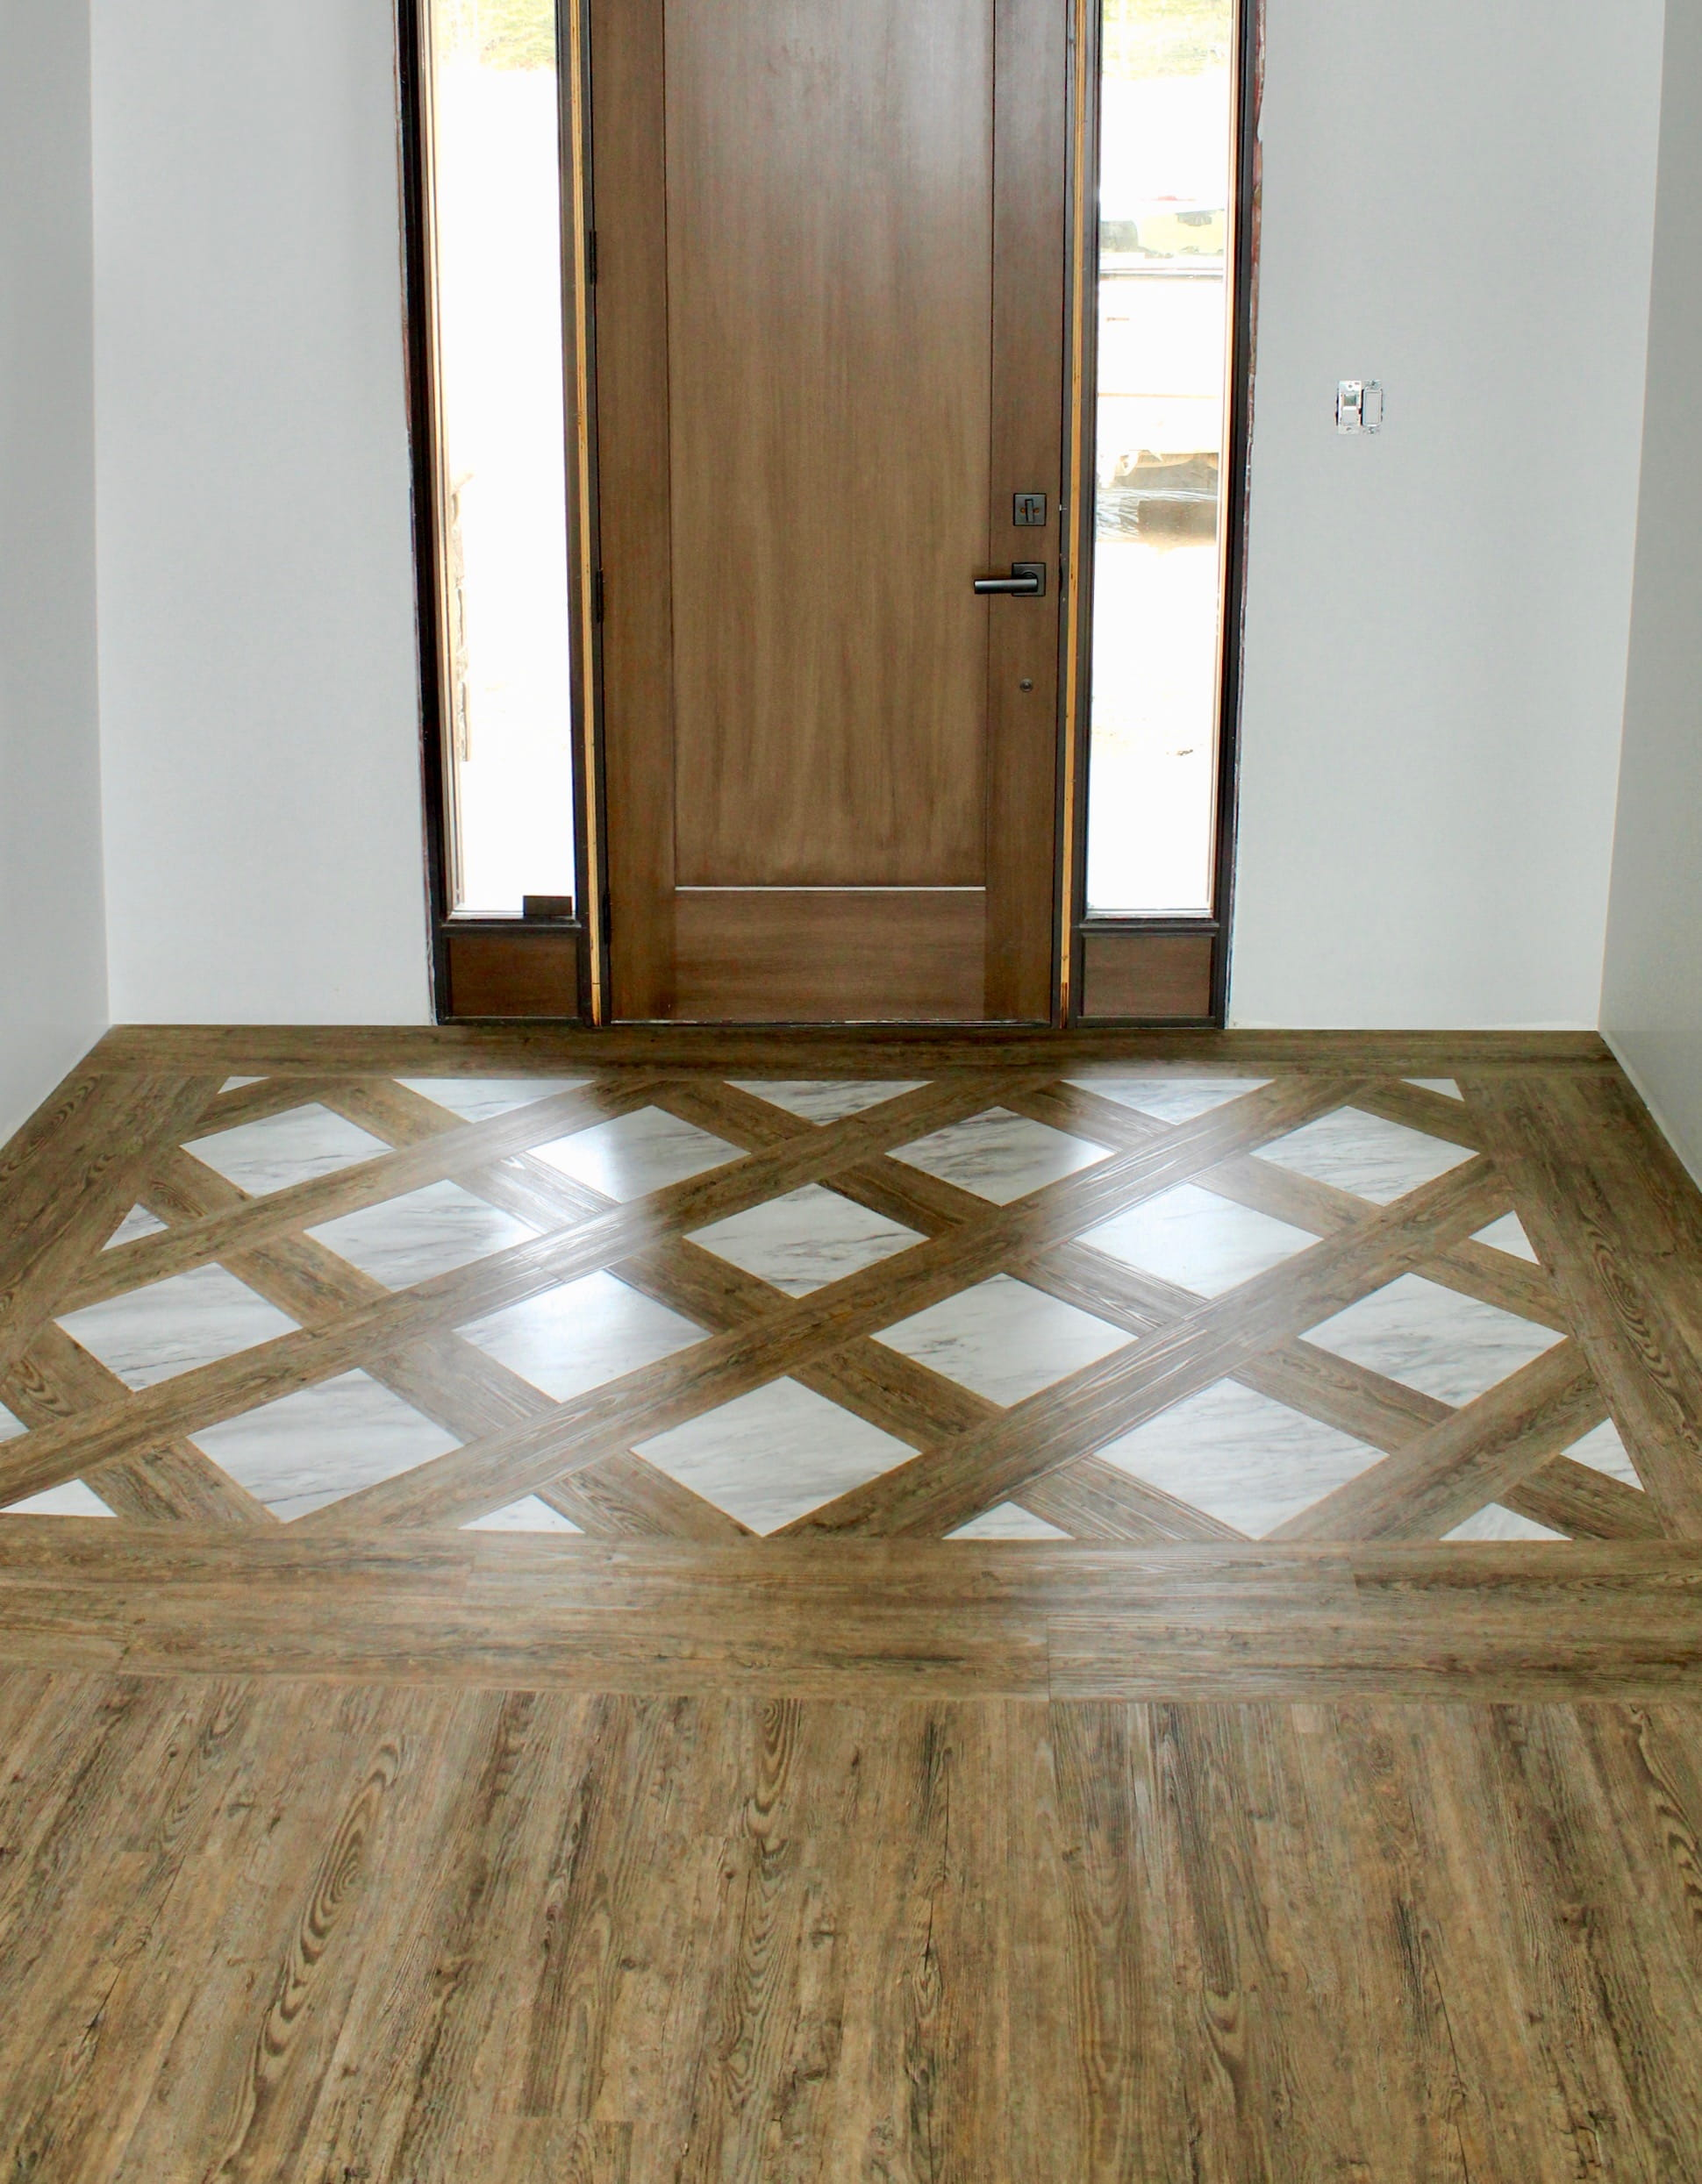 Vinyl Flooring for your home offered at Quality Carpet in Thunder Bay, Ontario